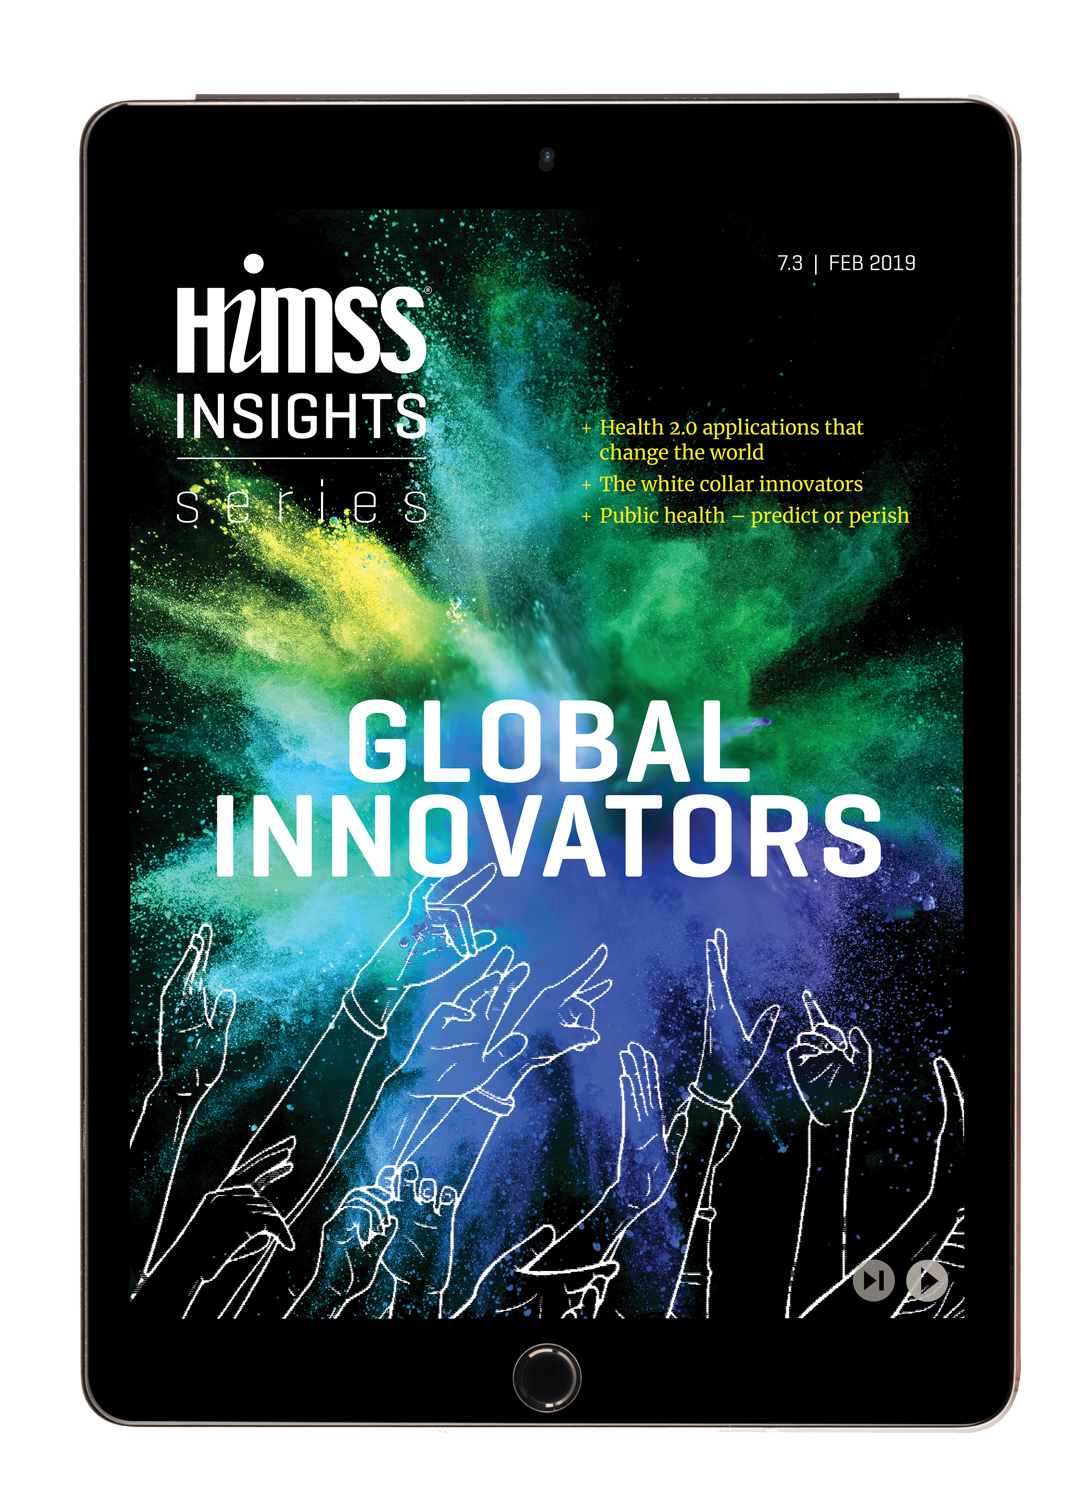 HIMSS Insights - Global Innovation